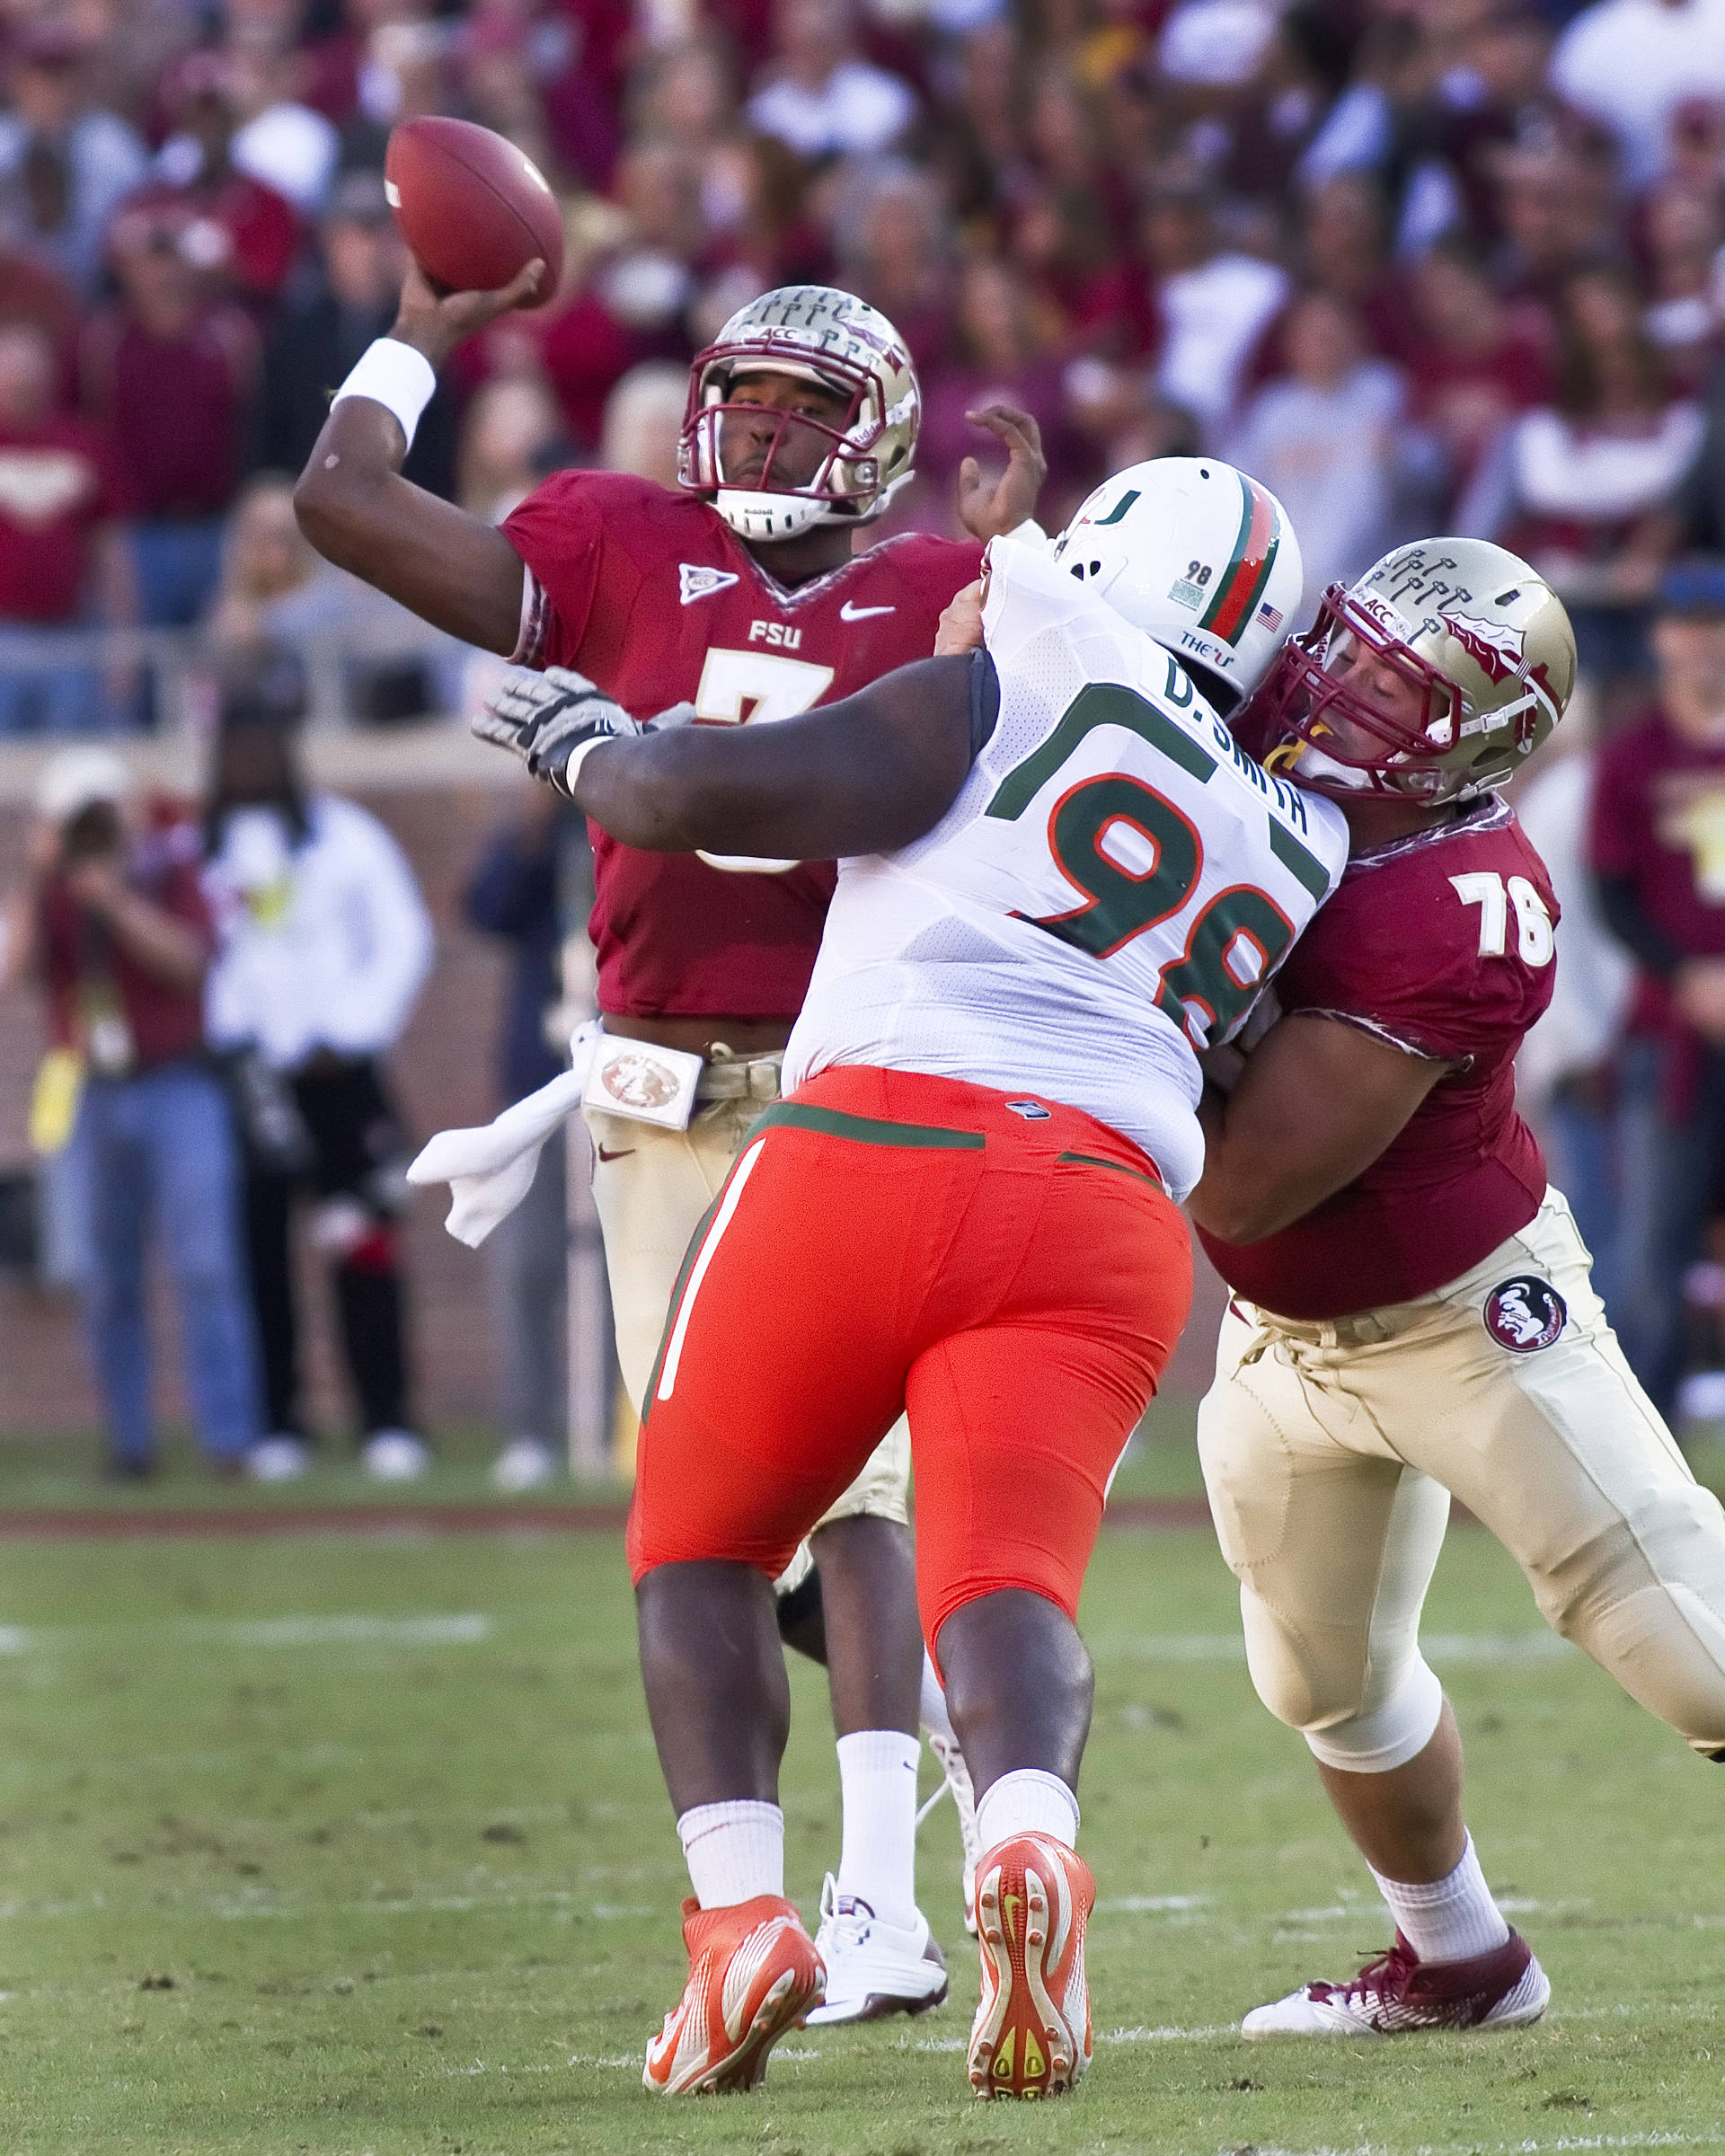 EJ Manuel (3), David Spurlock (79), FSU vs Miami, 11/12/2011